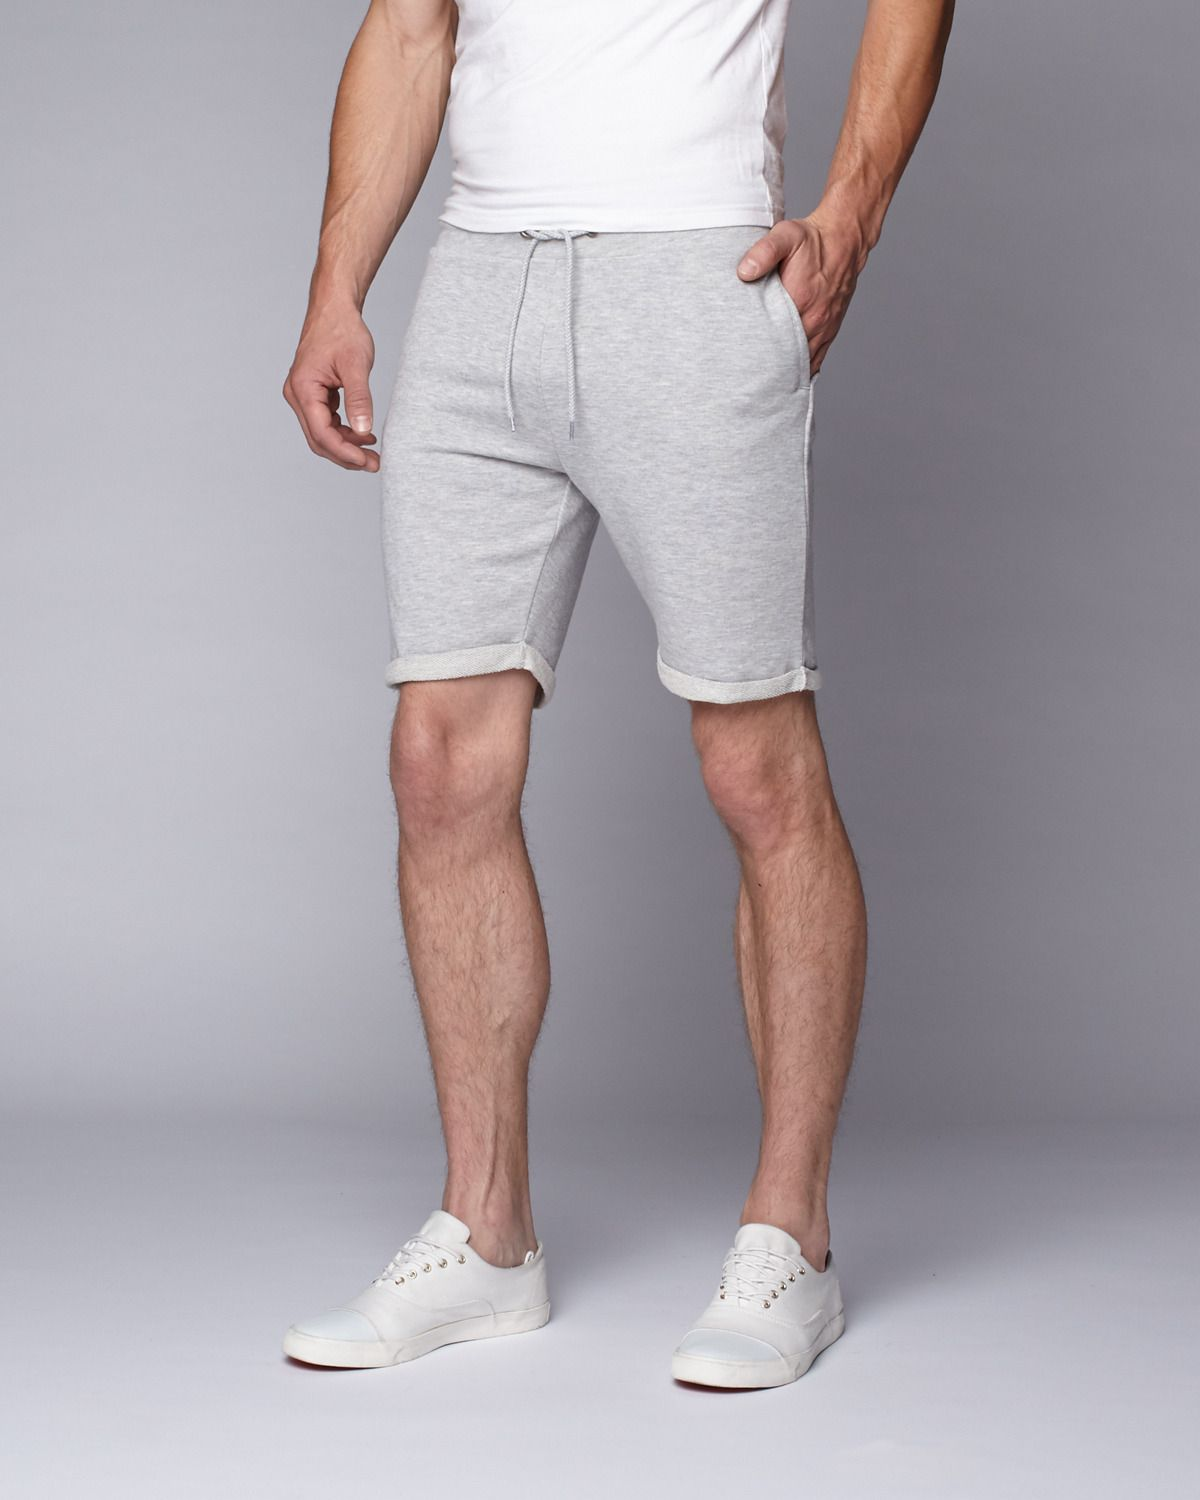 How To Wear Grey Sweat Shorts